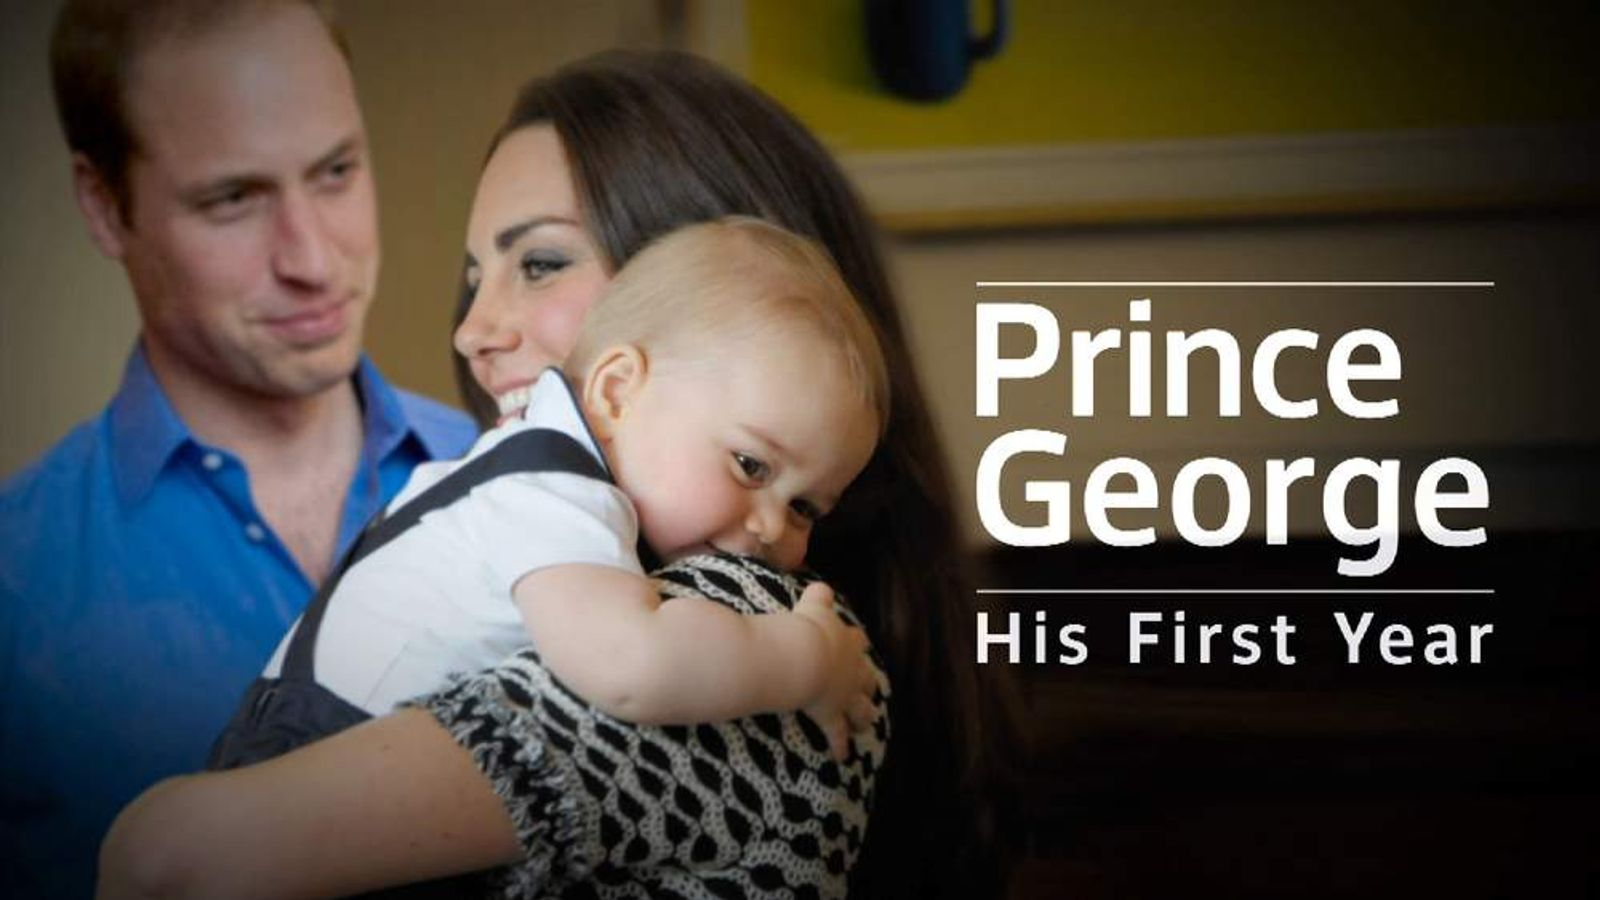 Prince George - His First Year